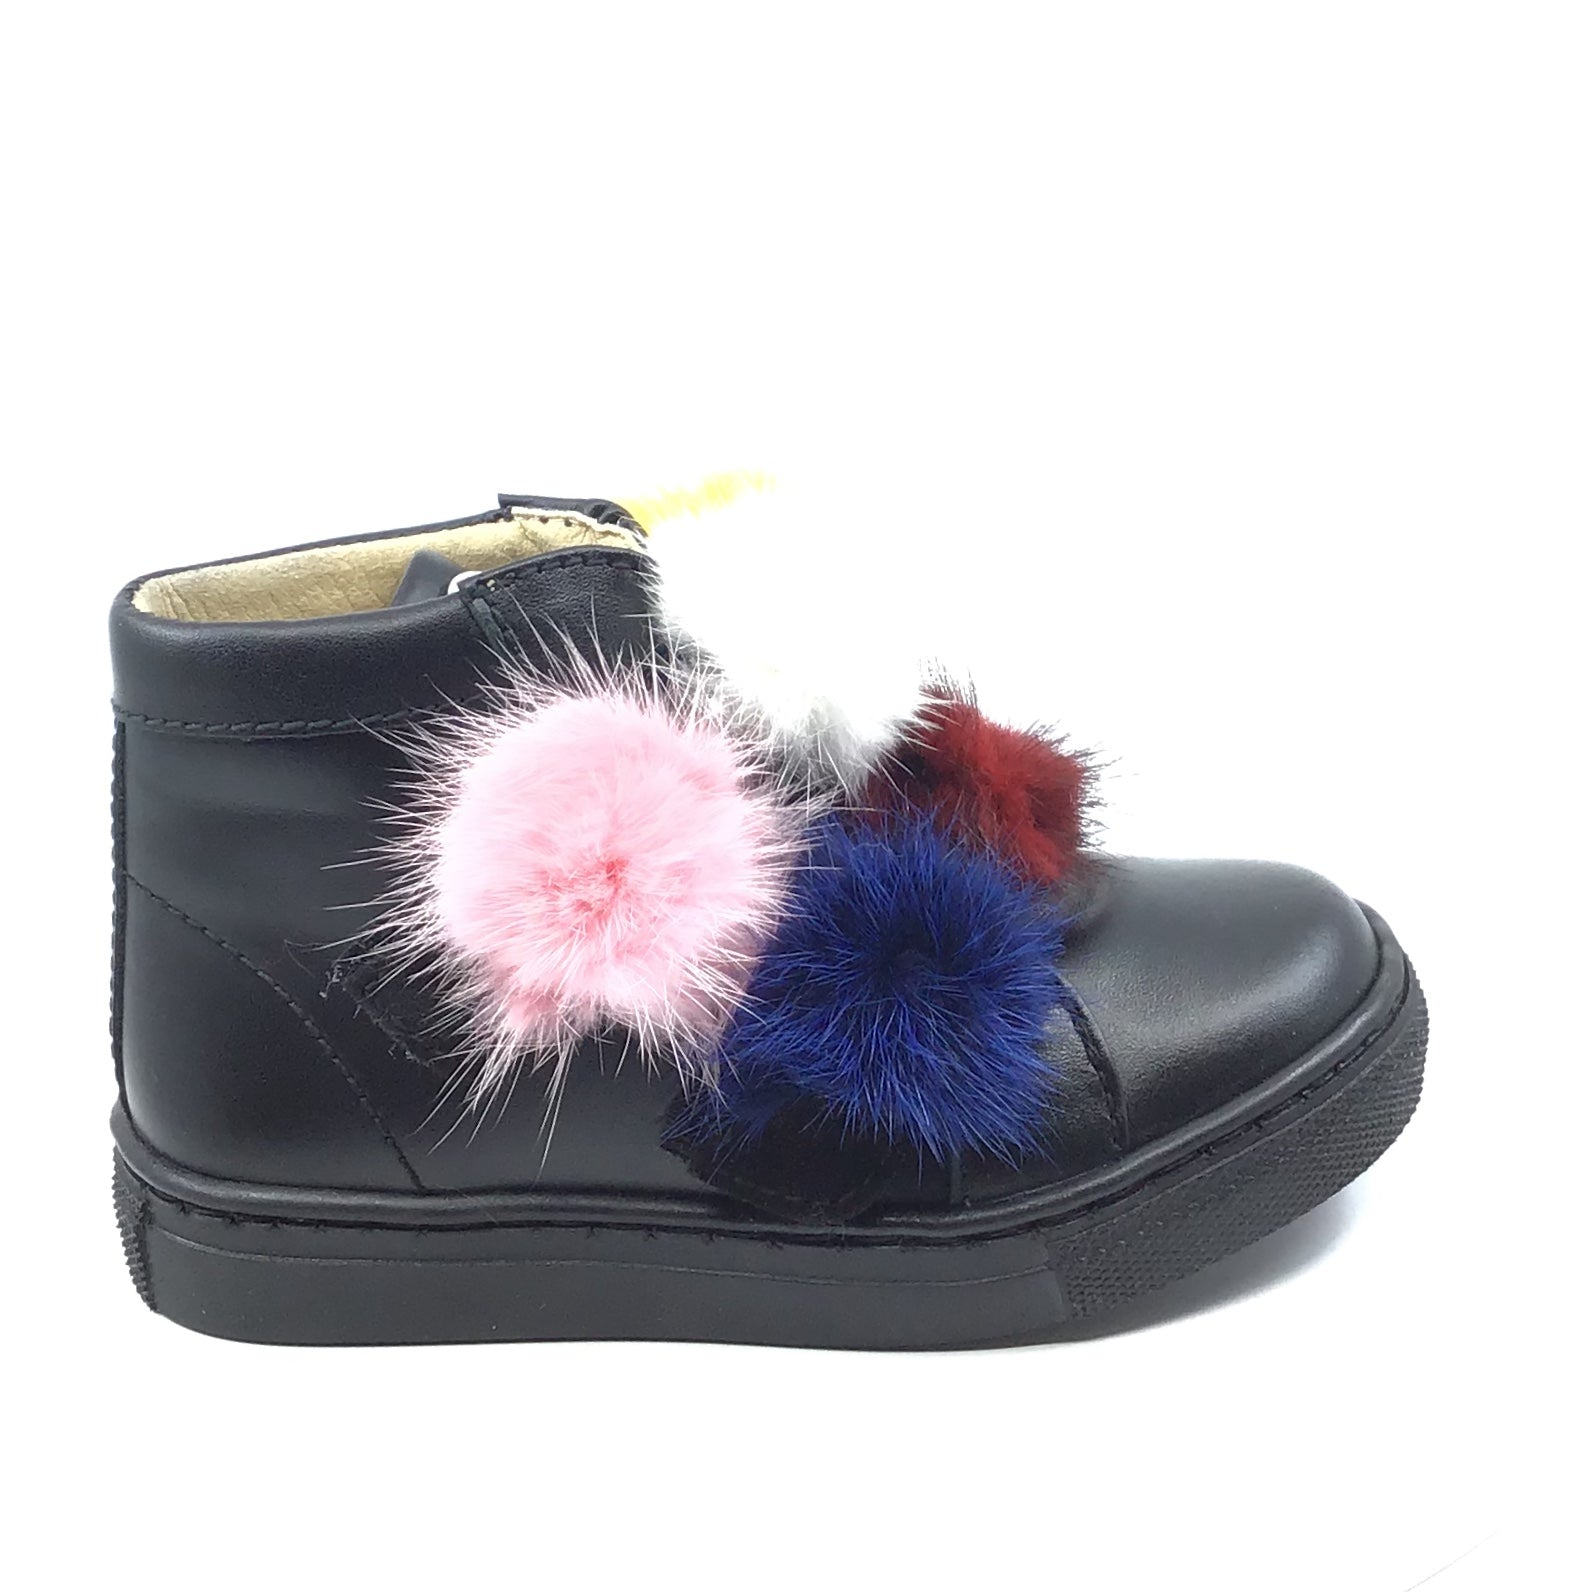 Papanatas Black Leather Sneaker With Pompoms